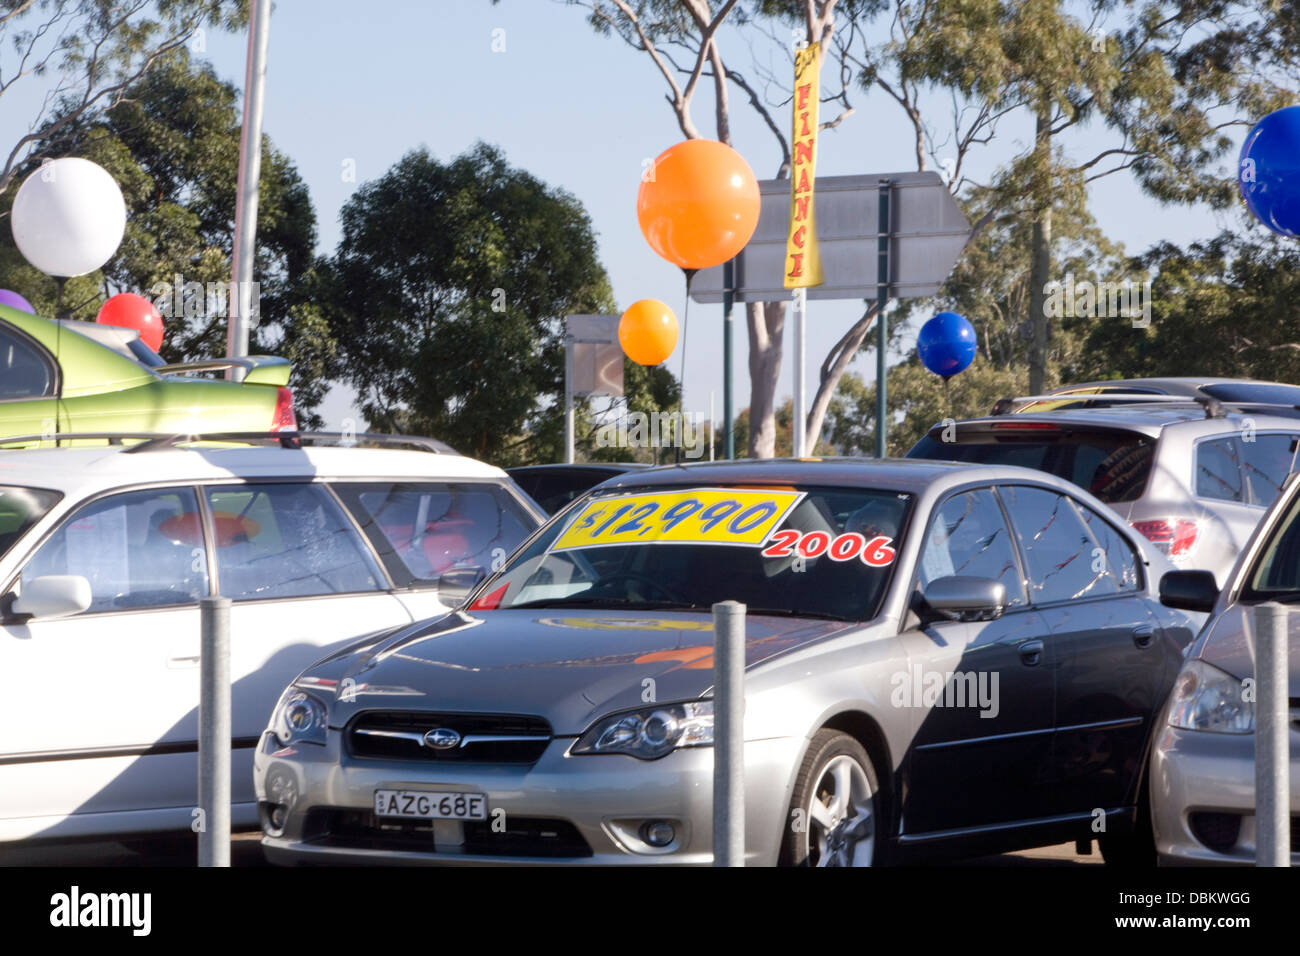 Used Car Lot Stock Photos & Used Car Lot Stock Images - Alamy